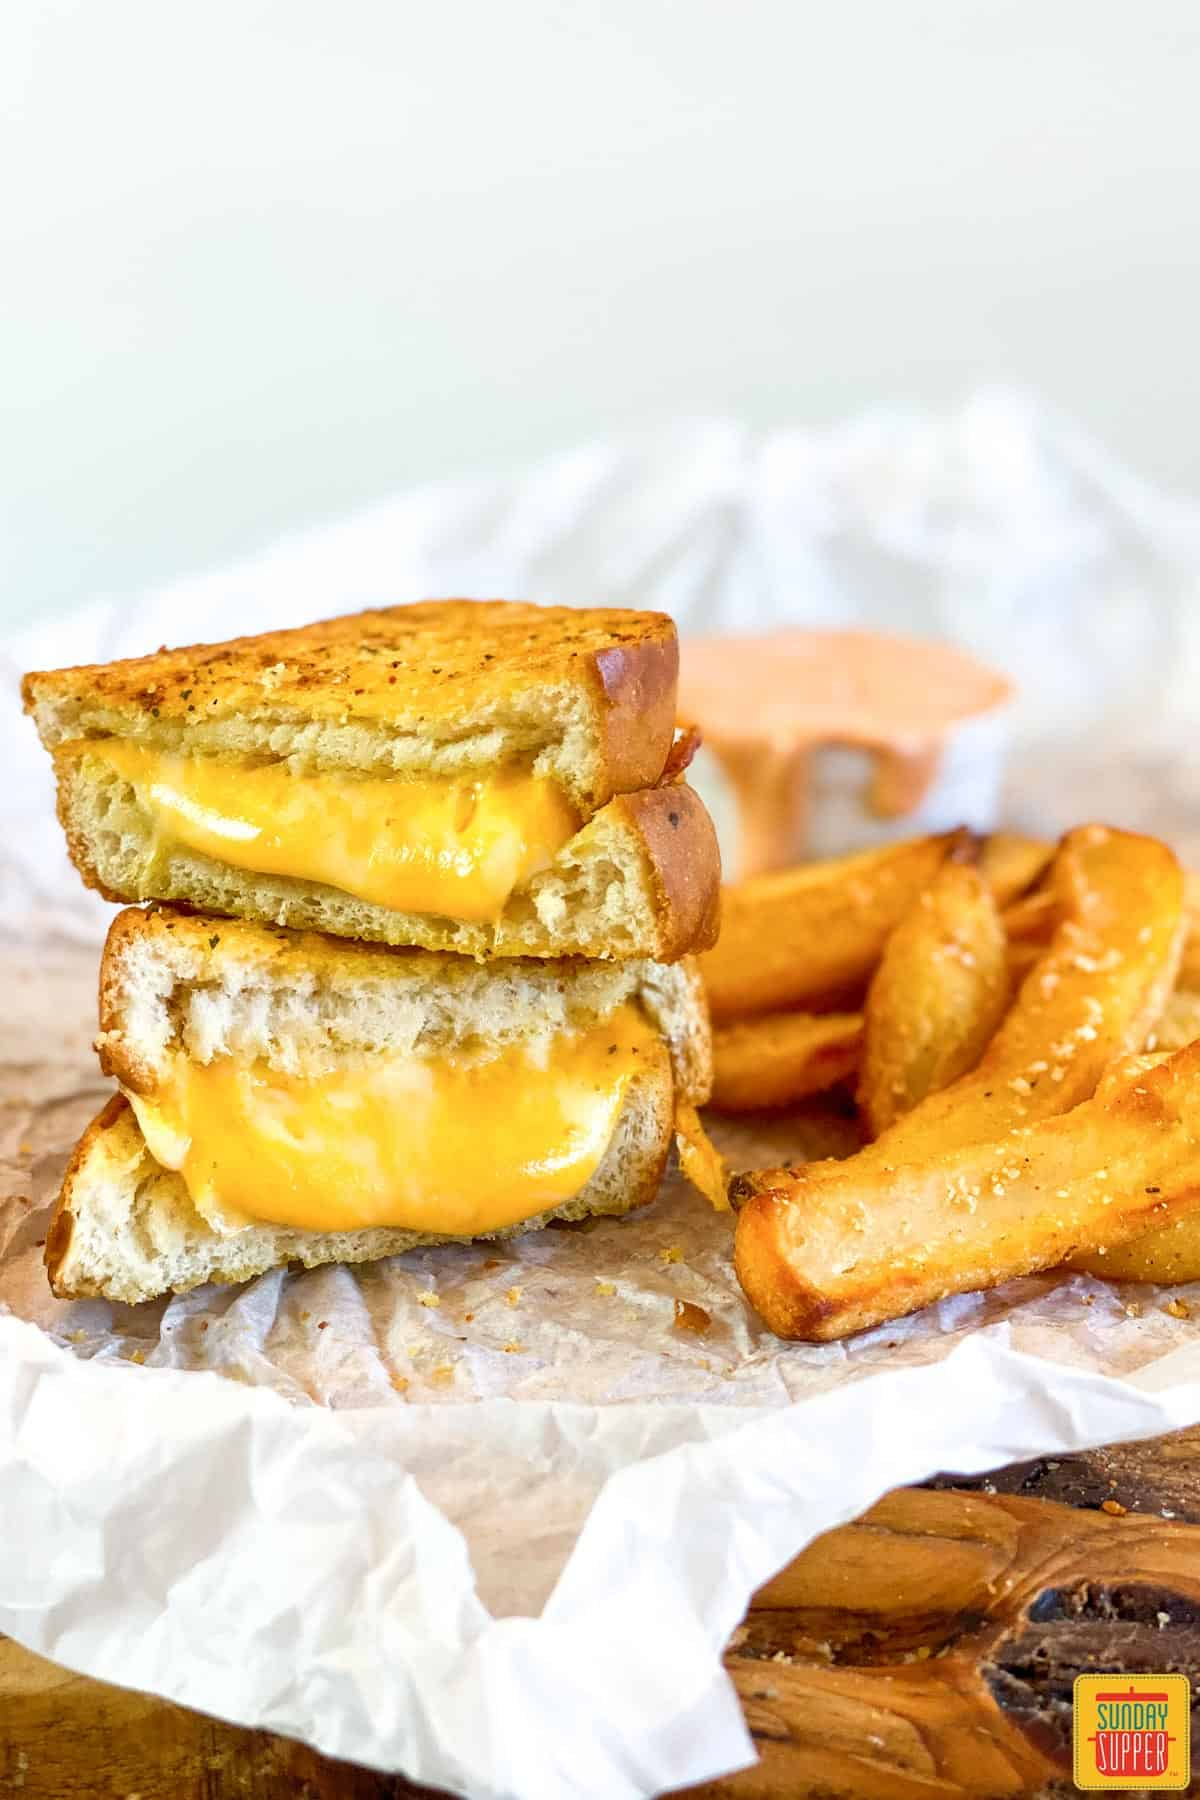 Air fryer grilled cheese cut in half next to some fries